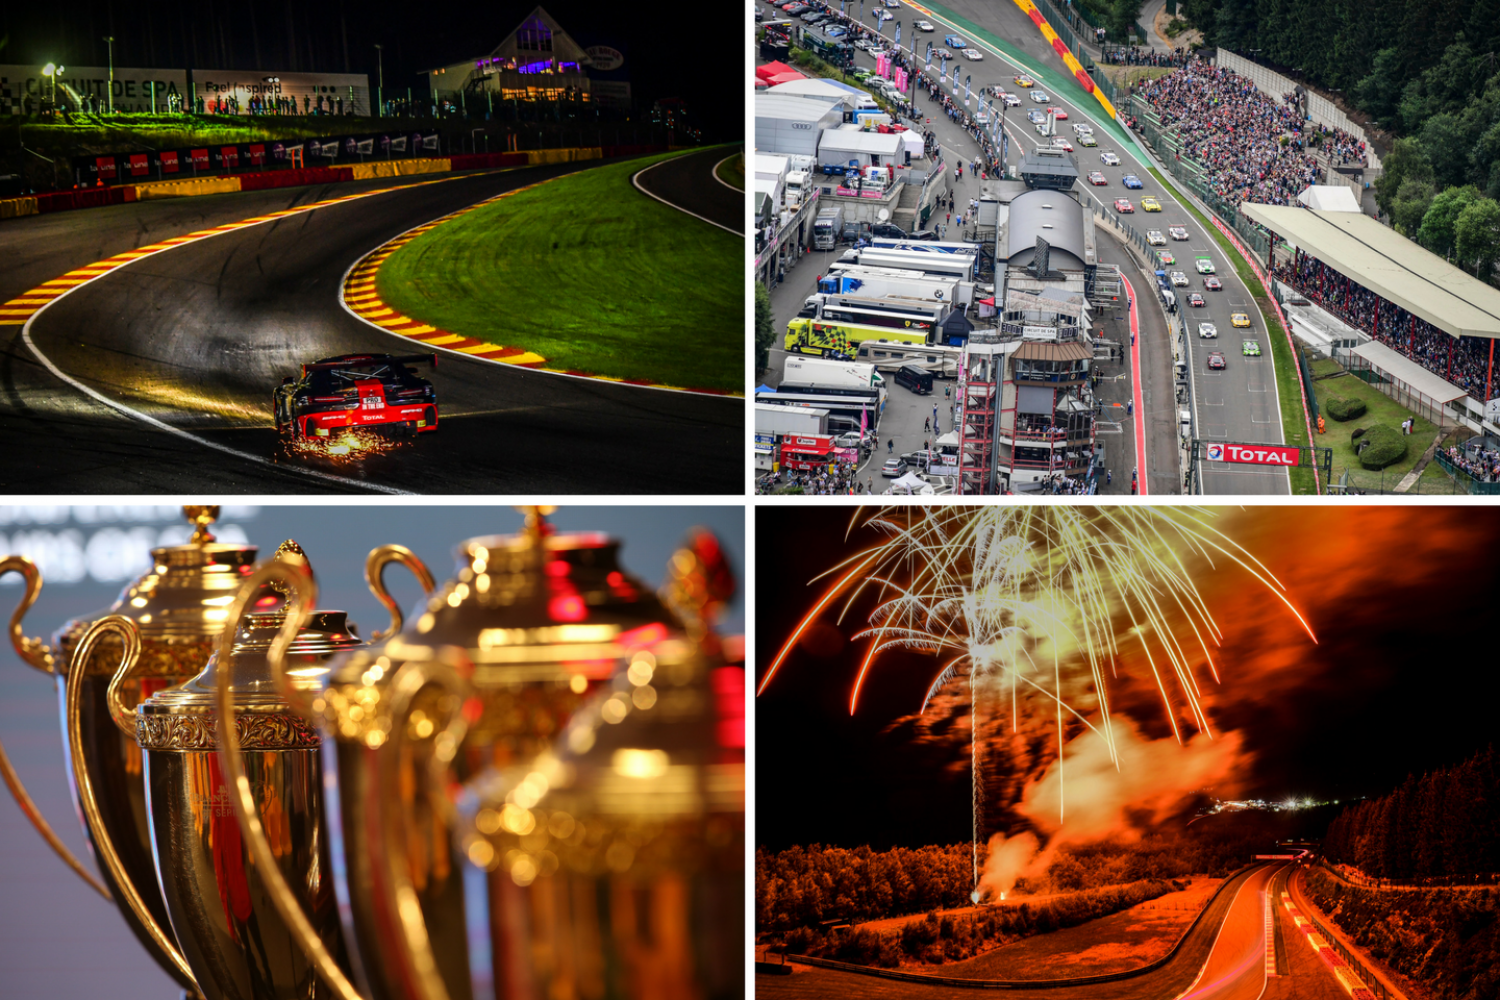 Impressive 66-car strong entry list for 2017 Total 24 Hours of Spa